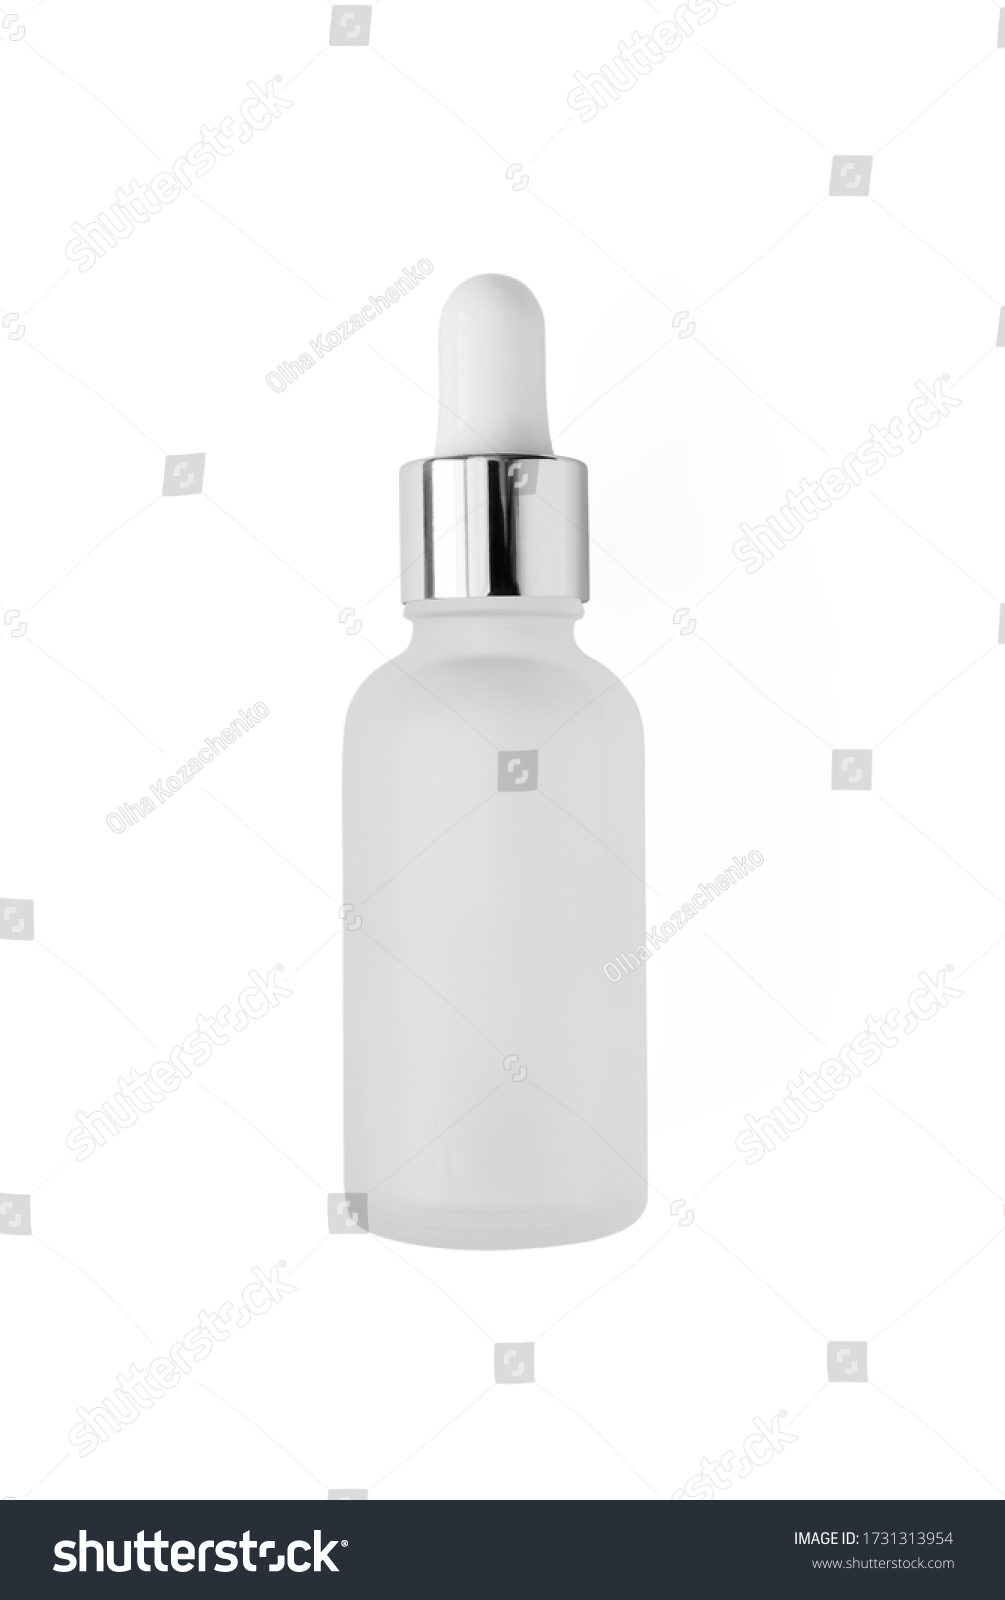 Frosted glass bottle with dropper with silver metallic cup isolated on white background, top view. Mockup cosmetic product